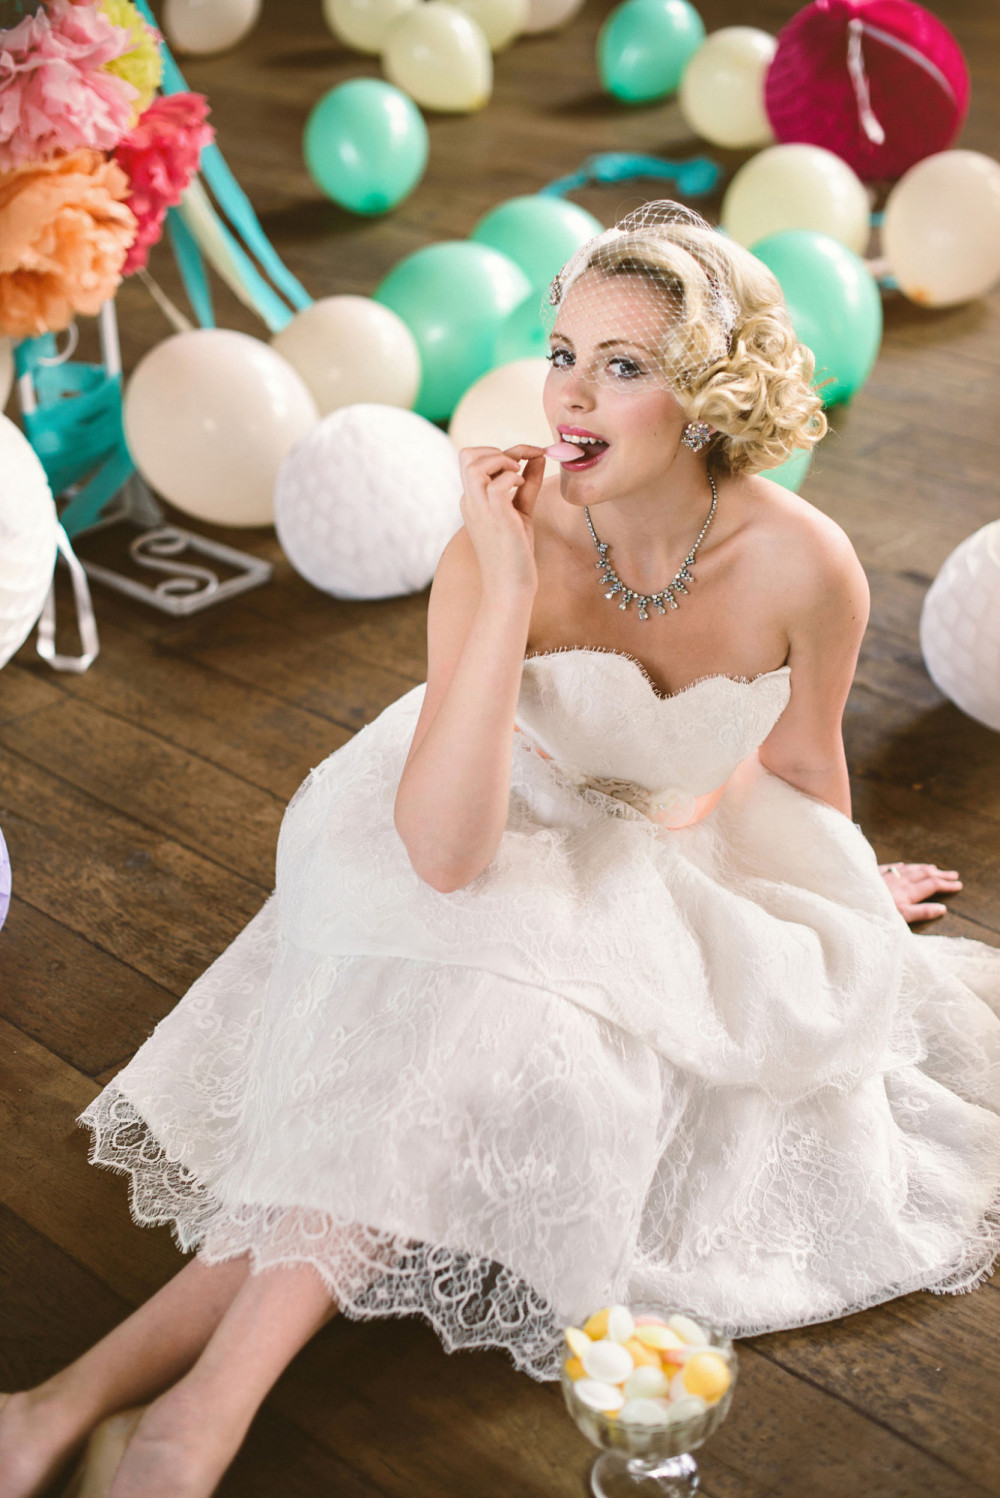 1950's inspired wedding photo shoot. Hair by Hair That Turns Heads. - Make Me Bridal Artist: Hair That Turns Heads. Photography by: Louise Bjorling. #classic #vintage #bridalhair #blonde #photoshoot #editorial #vintagehair #hairupvintage #london #vintagewedding #vintageinspired #vintageglamour #vintageveil #50s #curlyupdo #vintageupdo #vintagelook #vintageweddingdress